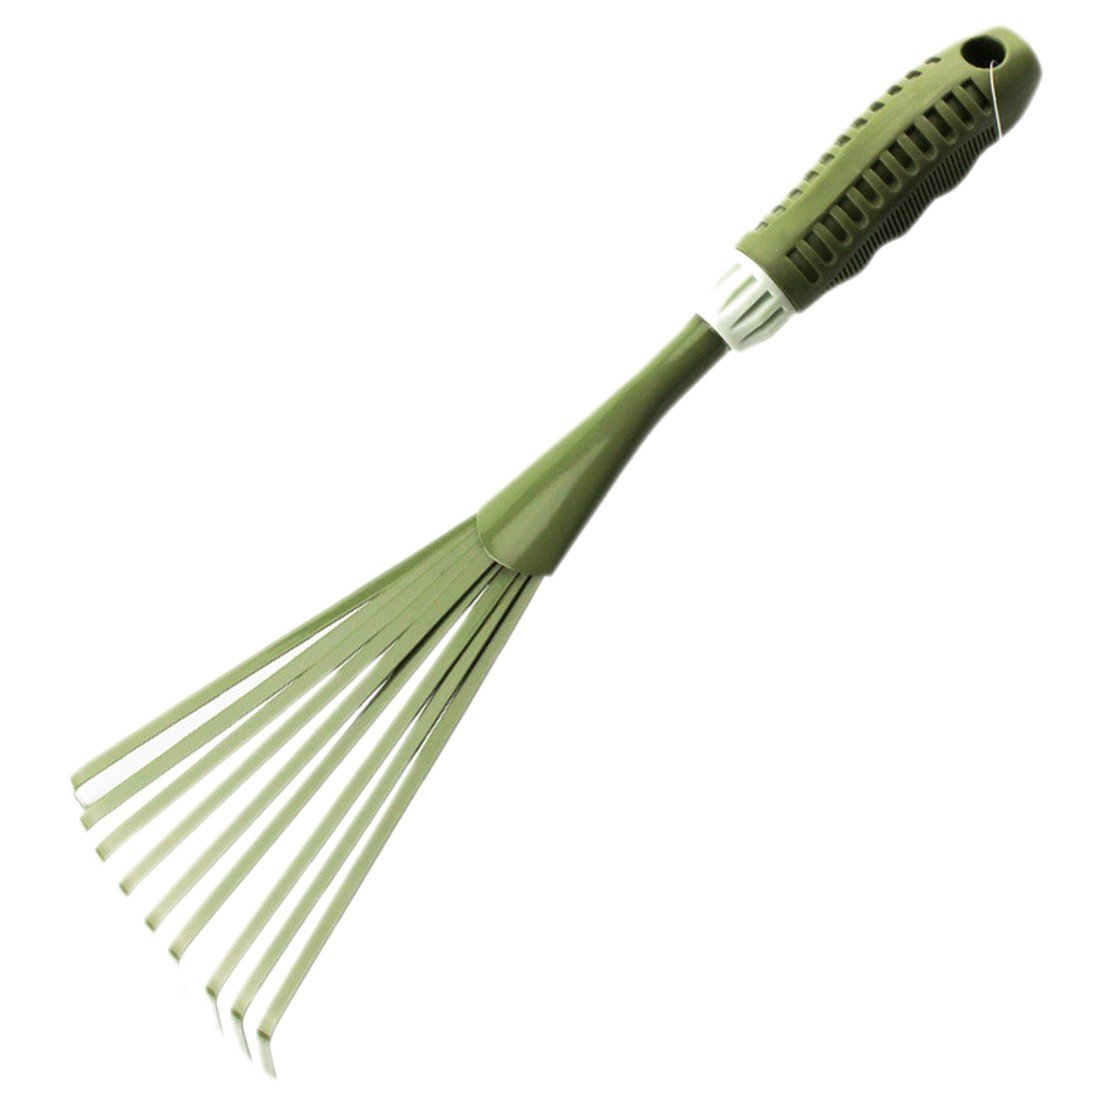 15 inch Mini Rake 9 Root Rake Shrub Rake Grip Hand Metal Leaf Rake Grass rake Garden Tools